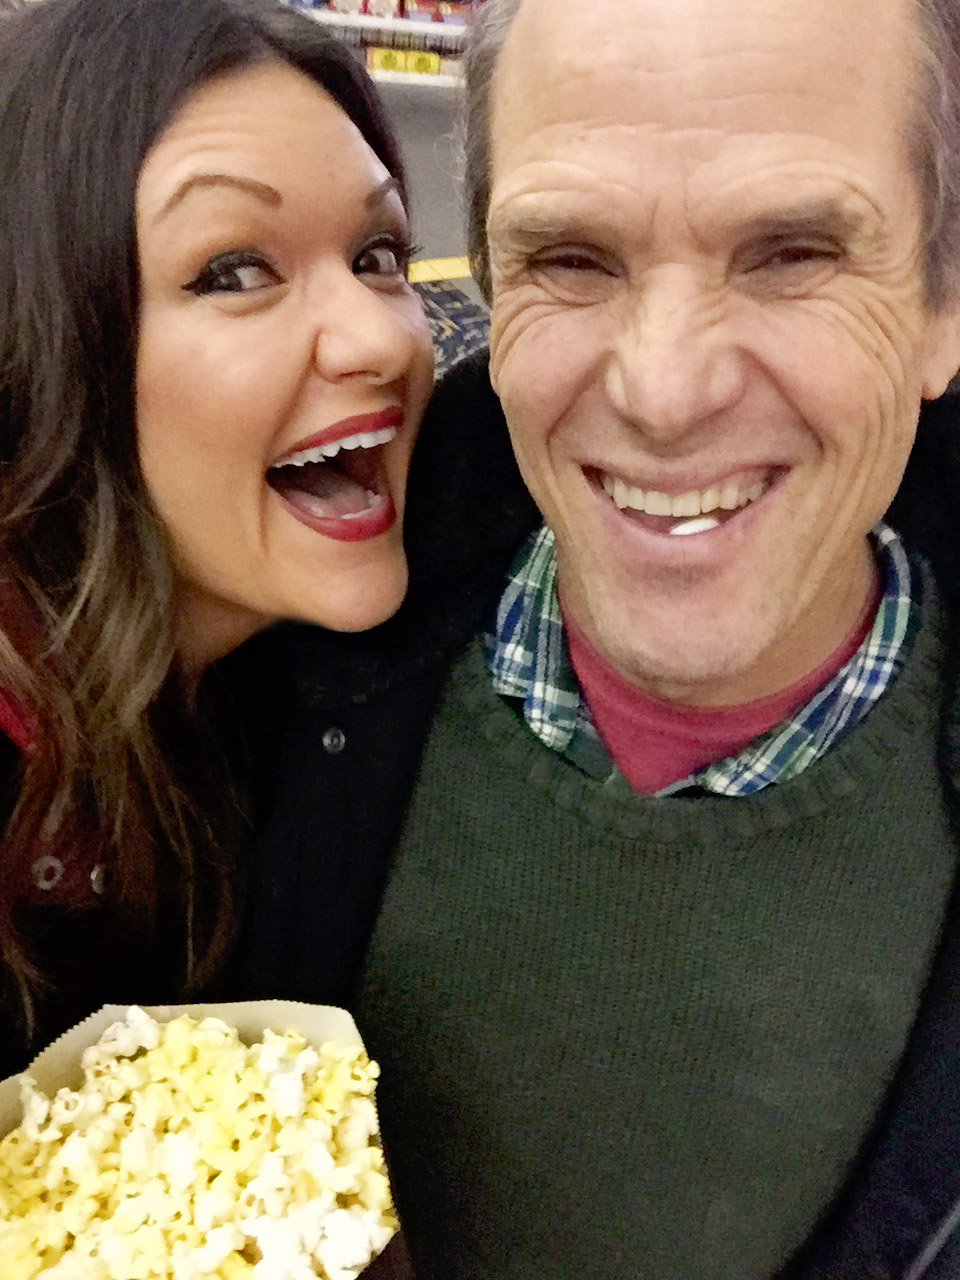 Sorry for the mouths full of gum and mints. And for the really bad theater lighting. We were very excited for Home Alone. The popcorn is probably what caused all this.